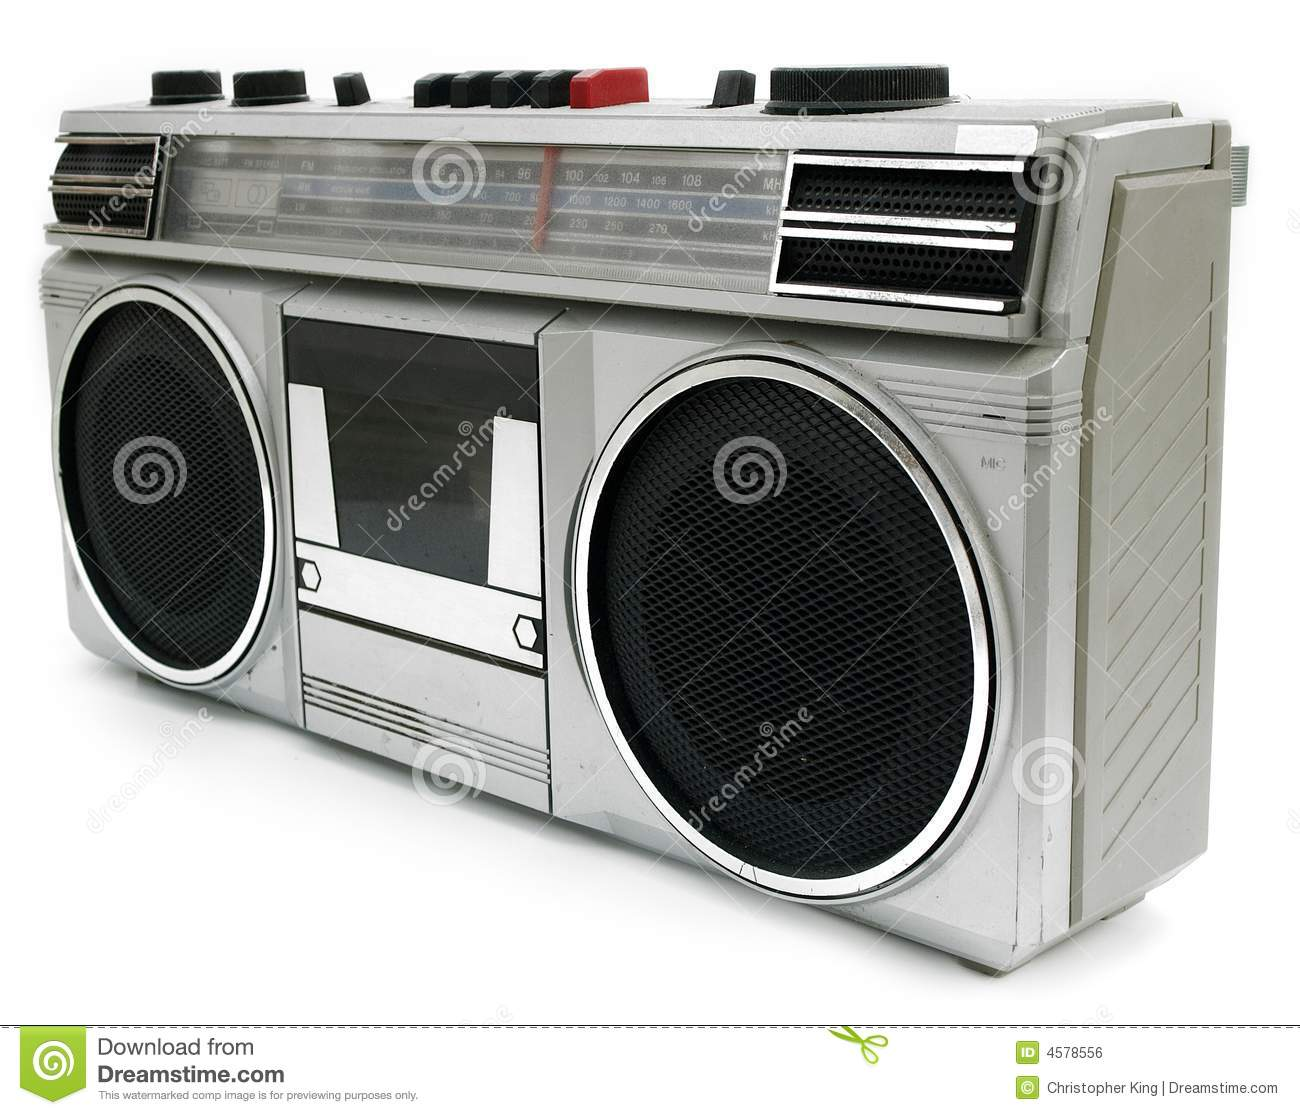 Anne Baxter likewise Royalty Free Stock Image 1980s Style Portable Cassette Player Image4578556 as well Edward G Robinson further Schoepfs Free Texas Music Series Koe Wetzel Photo Gallery moreover Max Bruch. on old time radio free s